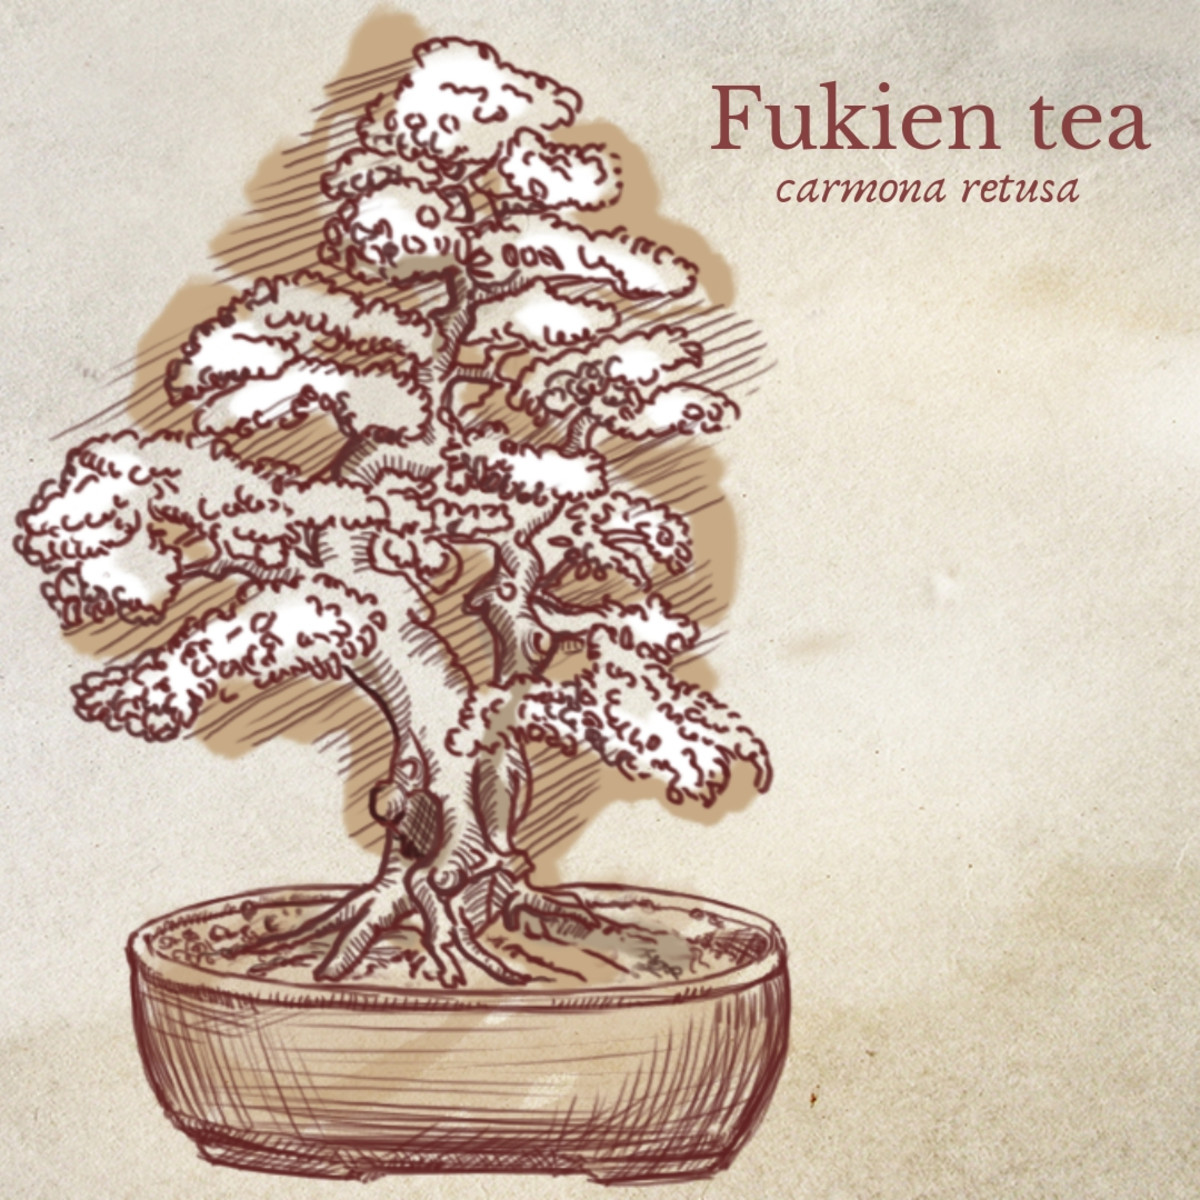 Illustration of Fukien Tea